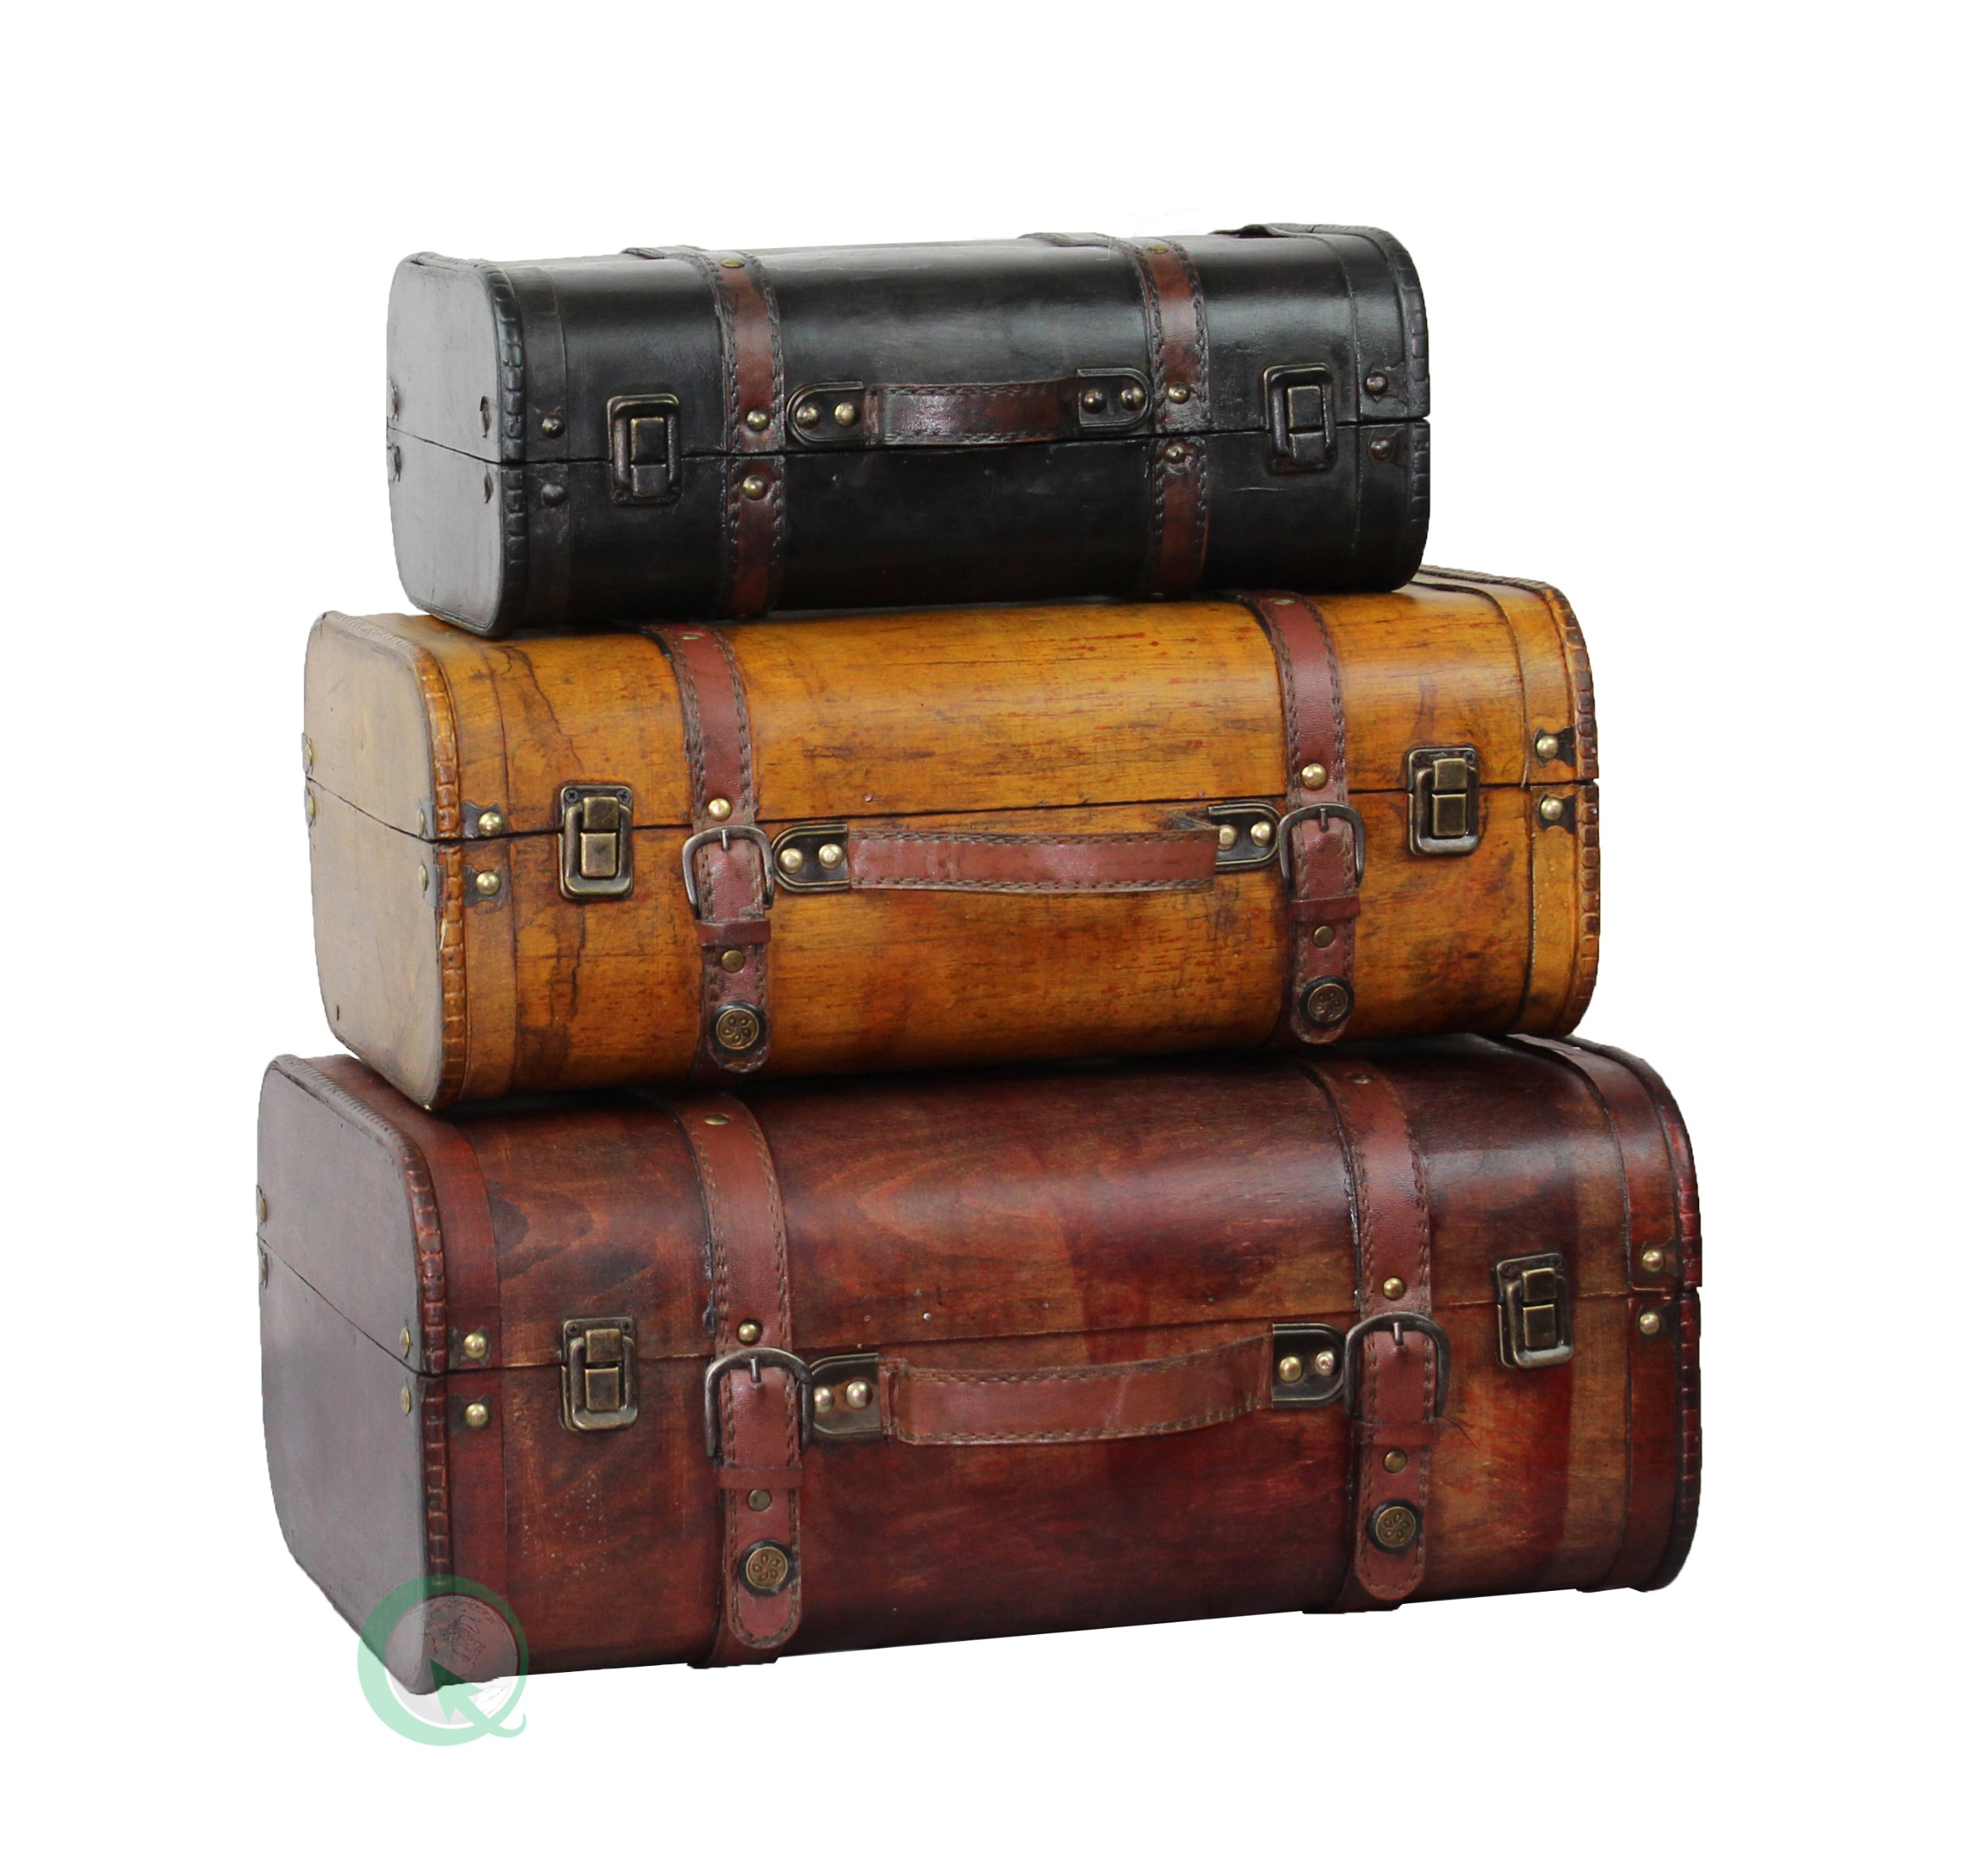 Sorry, vintage looking luggage for